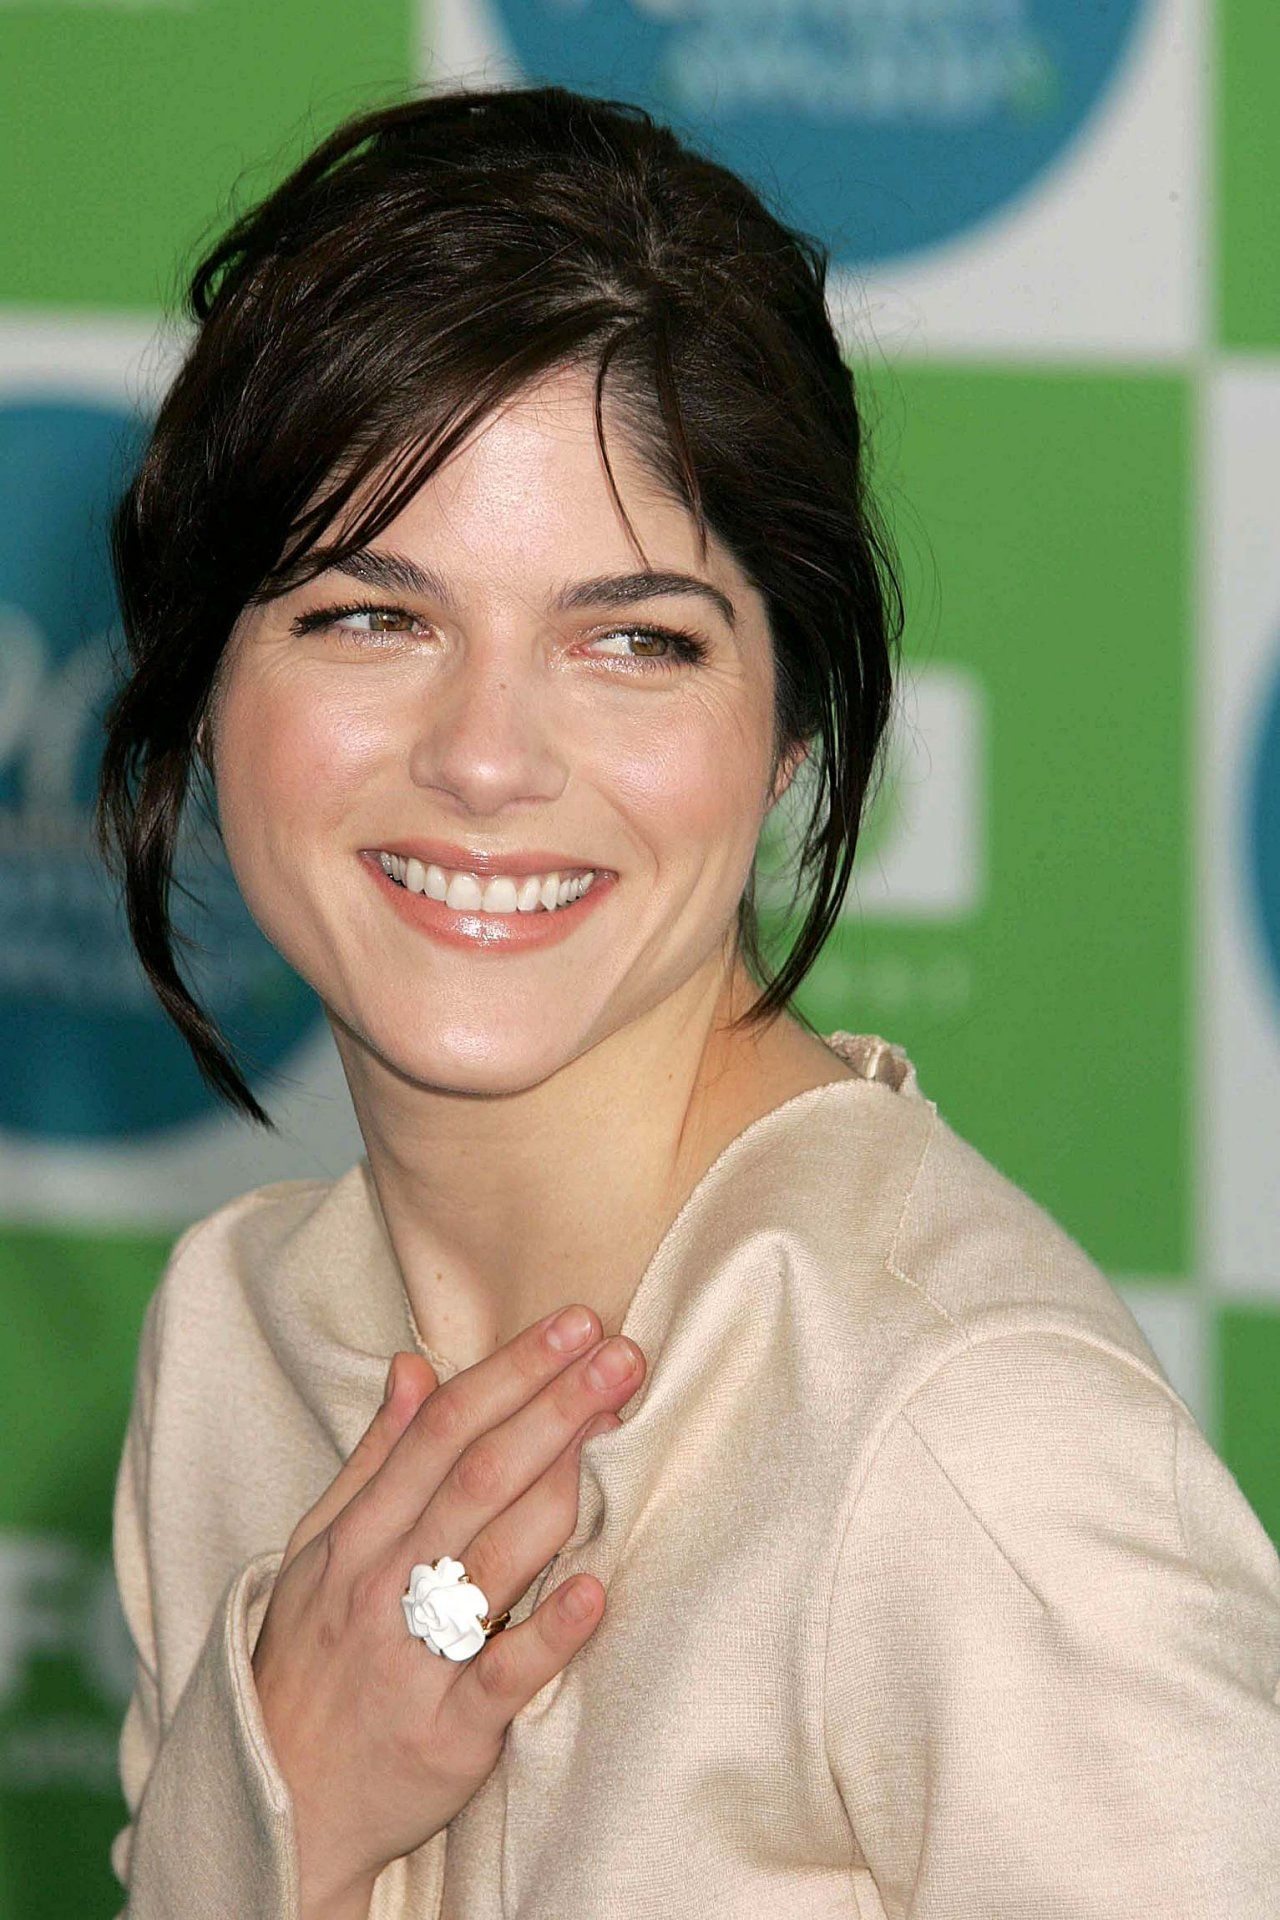 selma blair husbandselma blair фото, selma blair 2016, selma blair vk, selma blair friends, selma blair movies, selma blair 2017, selma blair movies list, selma blair partner, selma blair husband, selma blair bellazon, selma blair instagram, selma blair young, selma blair son, selma blair jared leto, selma blair on charlie sheen, selma blair fansite, selma blair interview